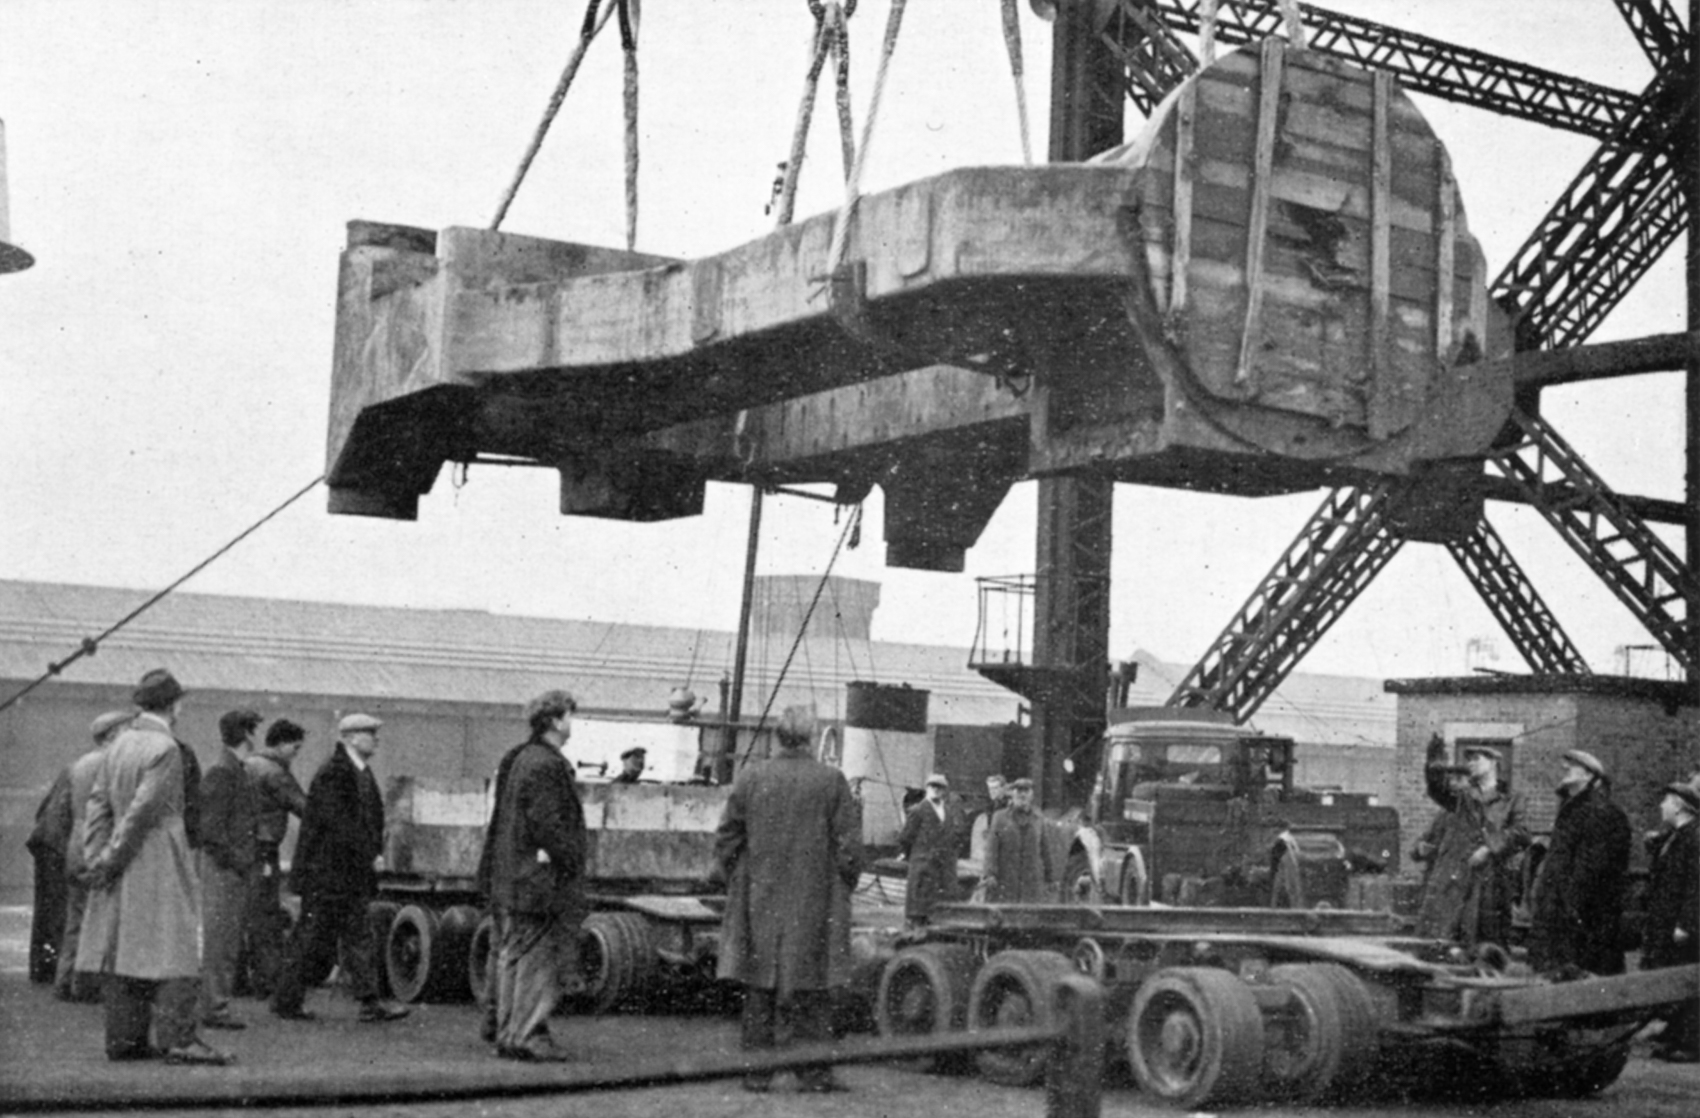 One of the rolling mill housings rescued from the bottom of the Mersey finally arrives in Glasgow, March or April 1961.